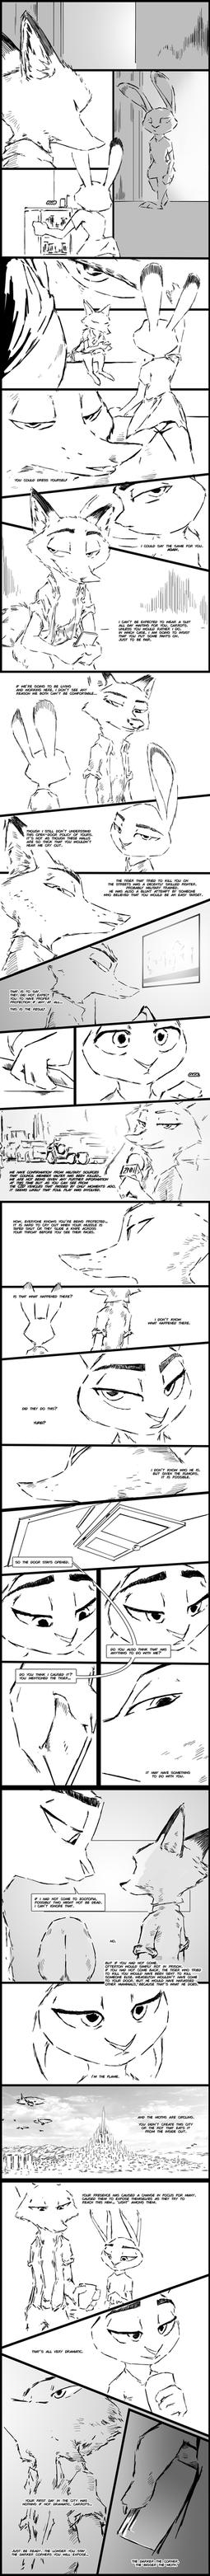 Sunderance - Chapter 10.3: Phaethon's Fall by TheWyvernsWeaver